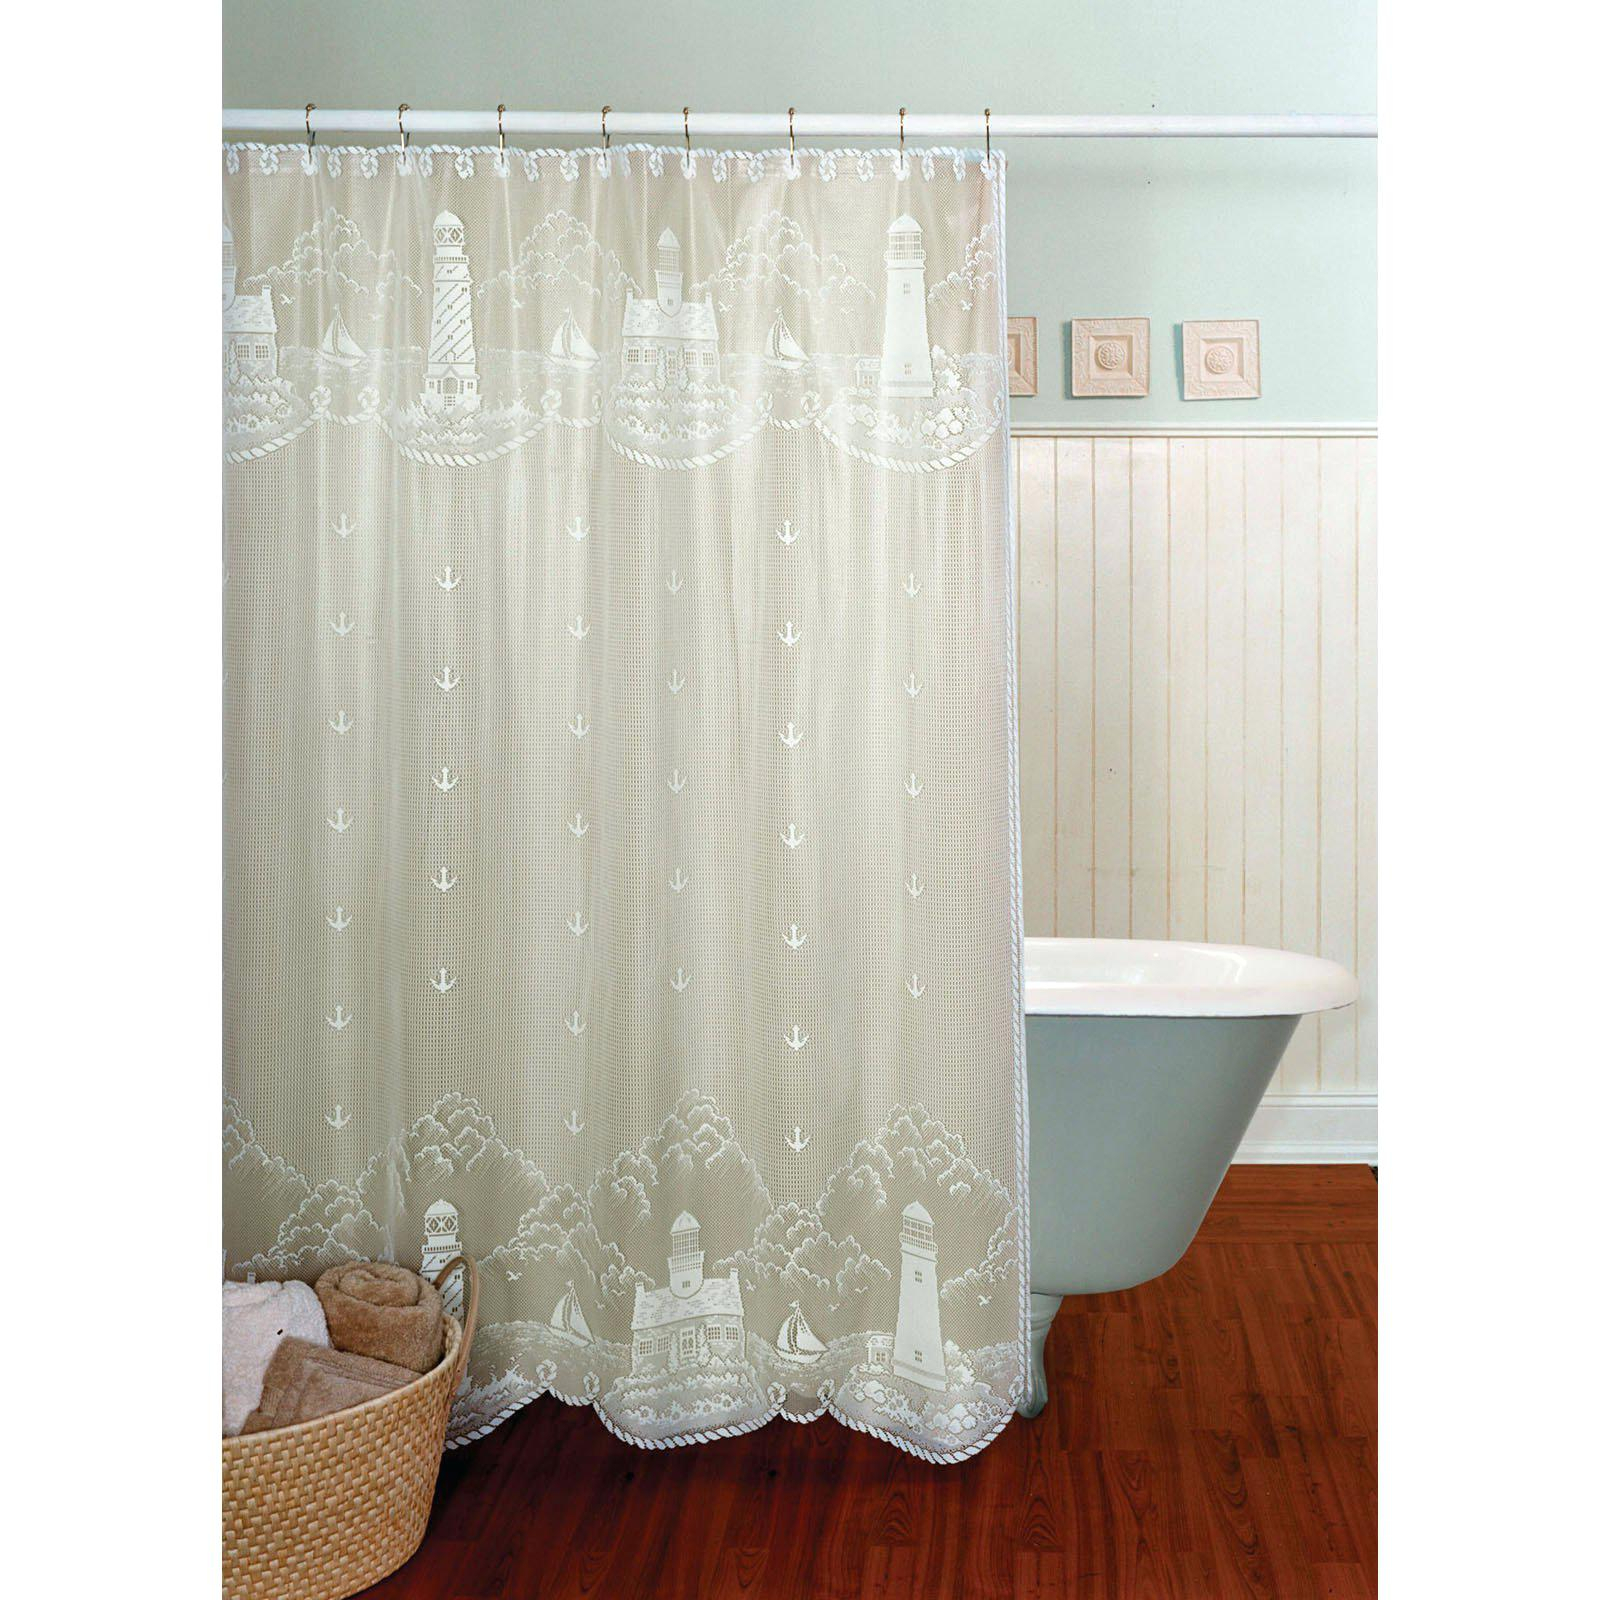 clear shower curtain magnets shower curtains ideas. Black Bedroom Furniture Sets. Home Design Ideas